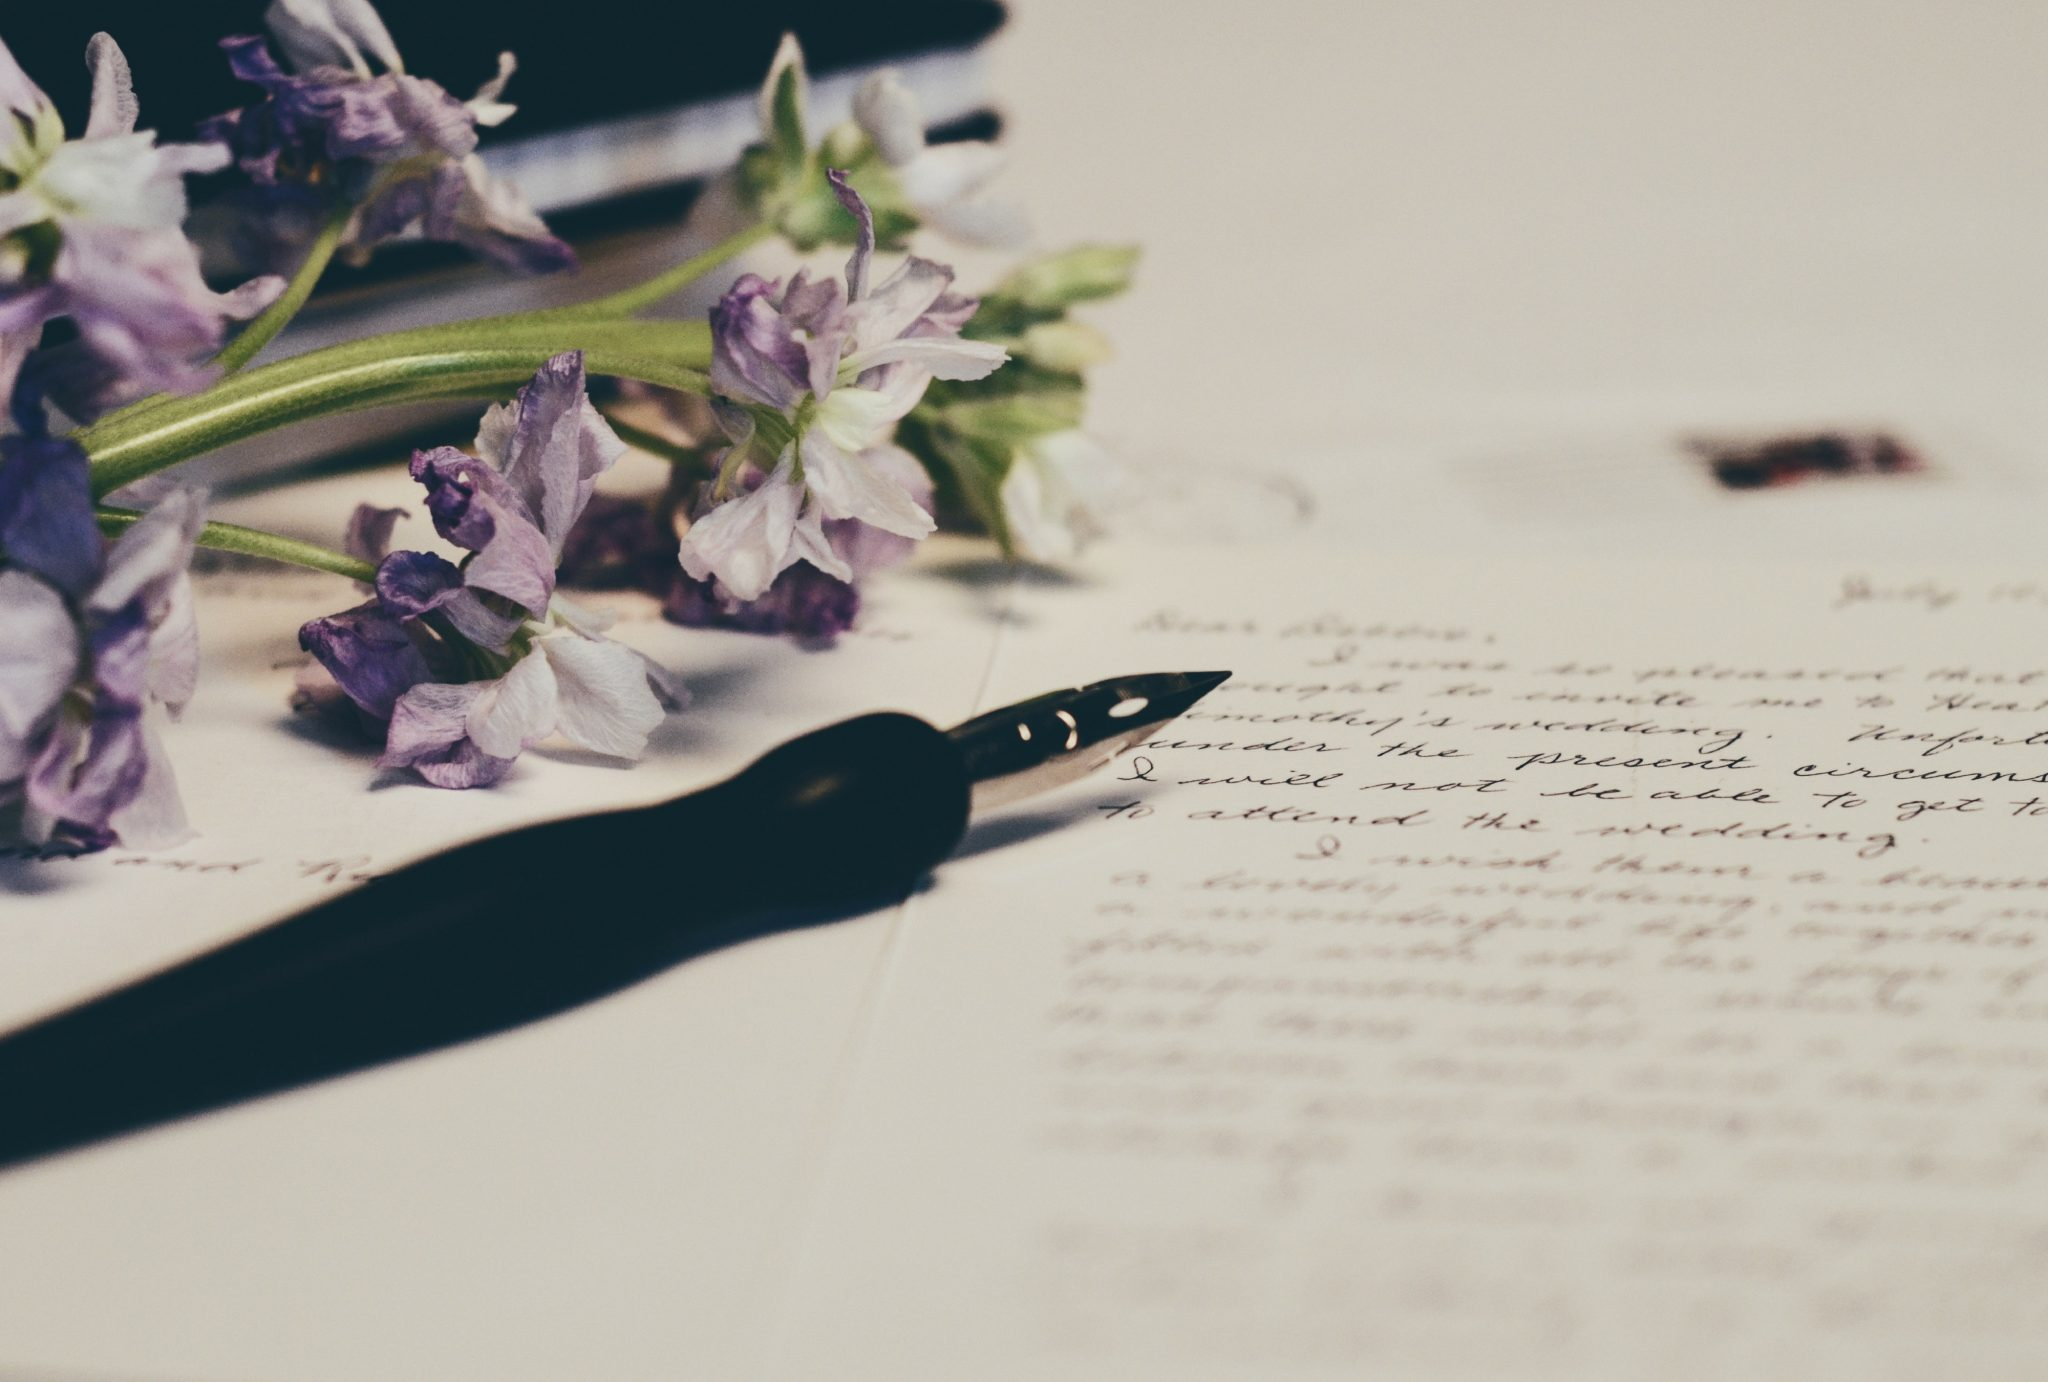 Intuitive eating letter to loved one